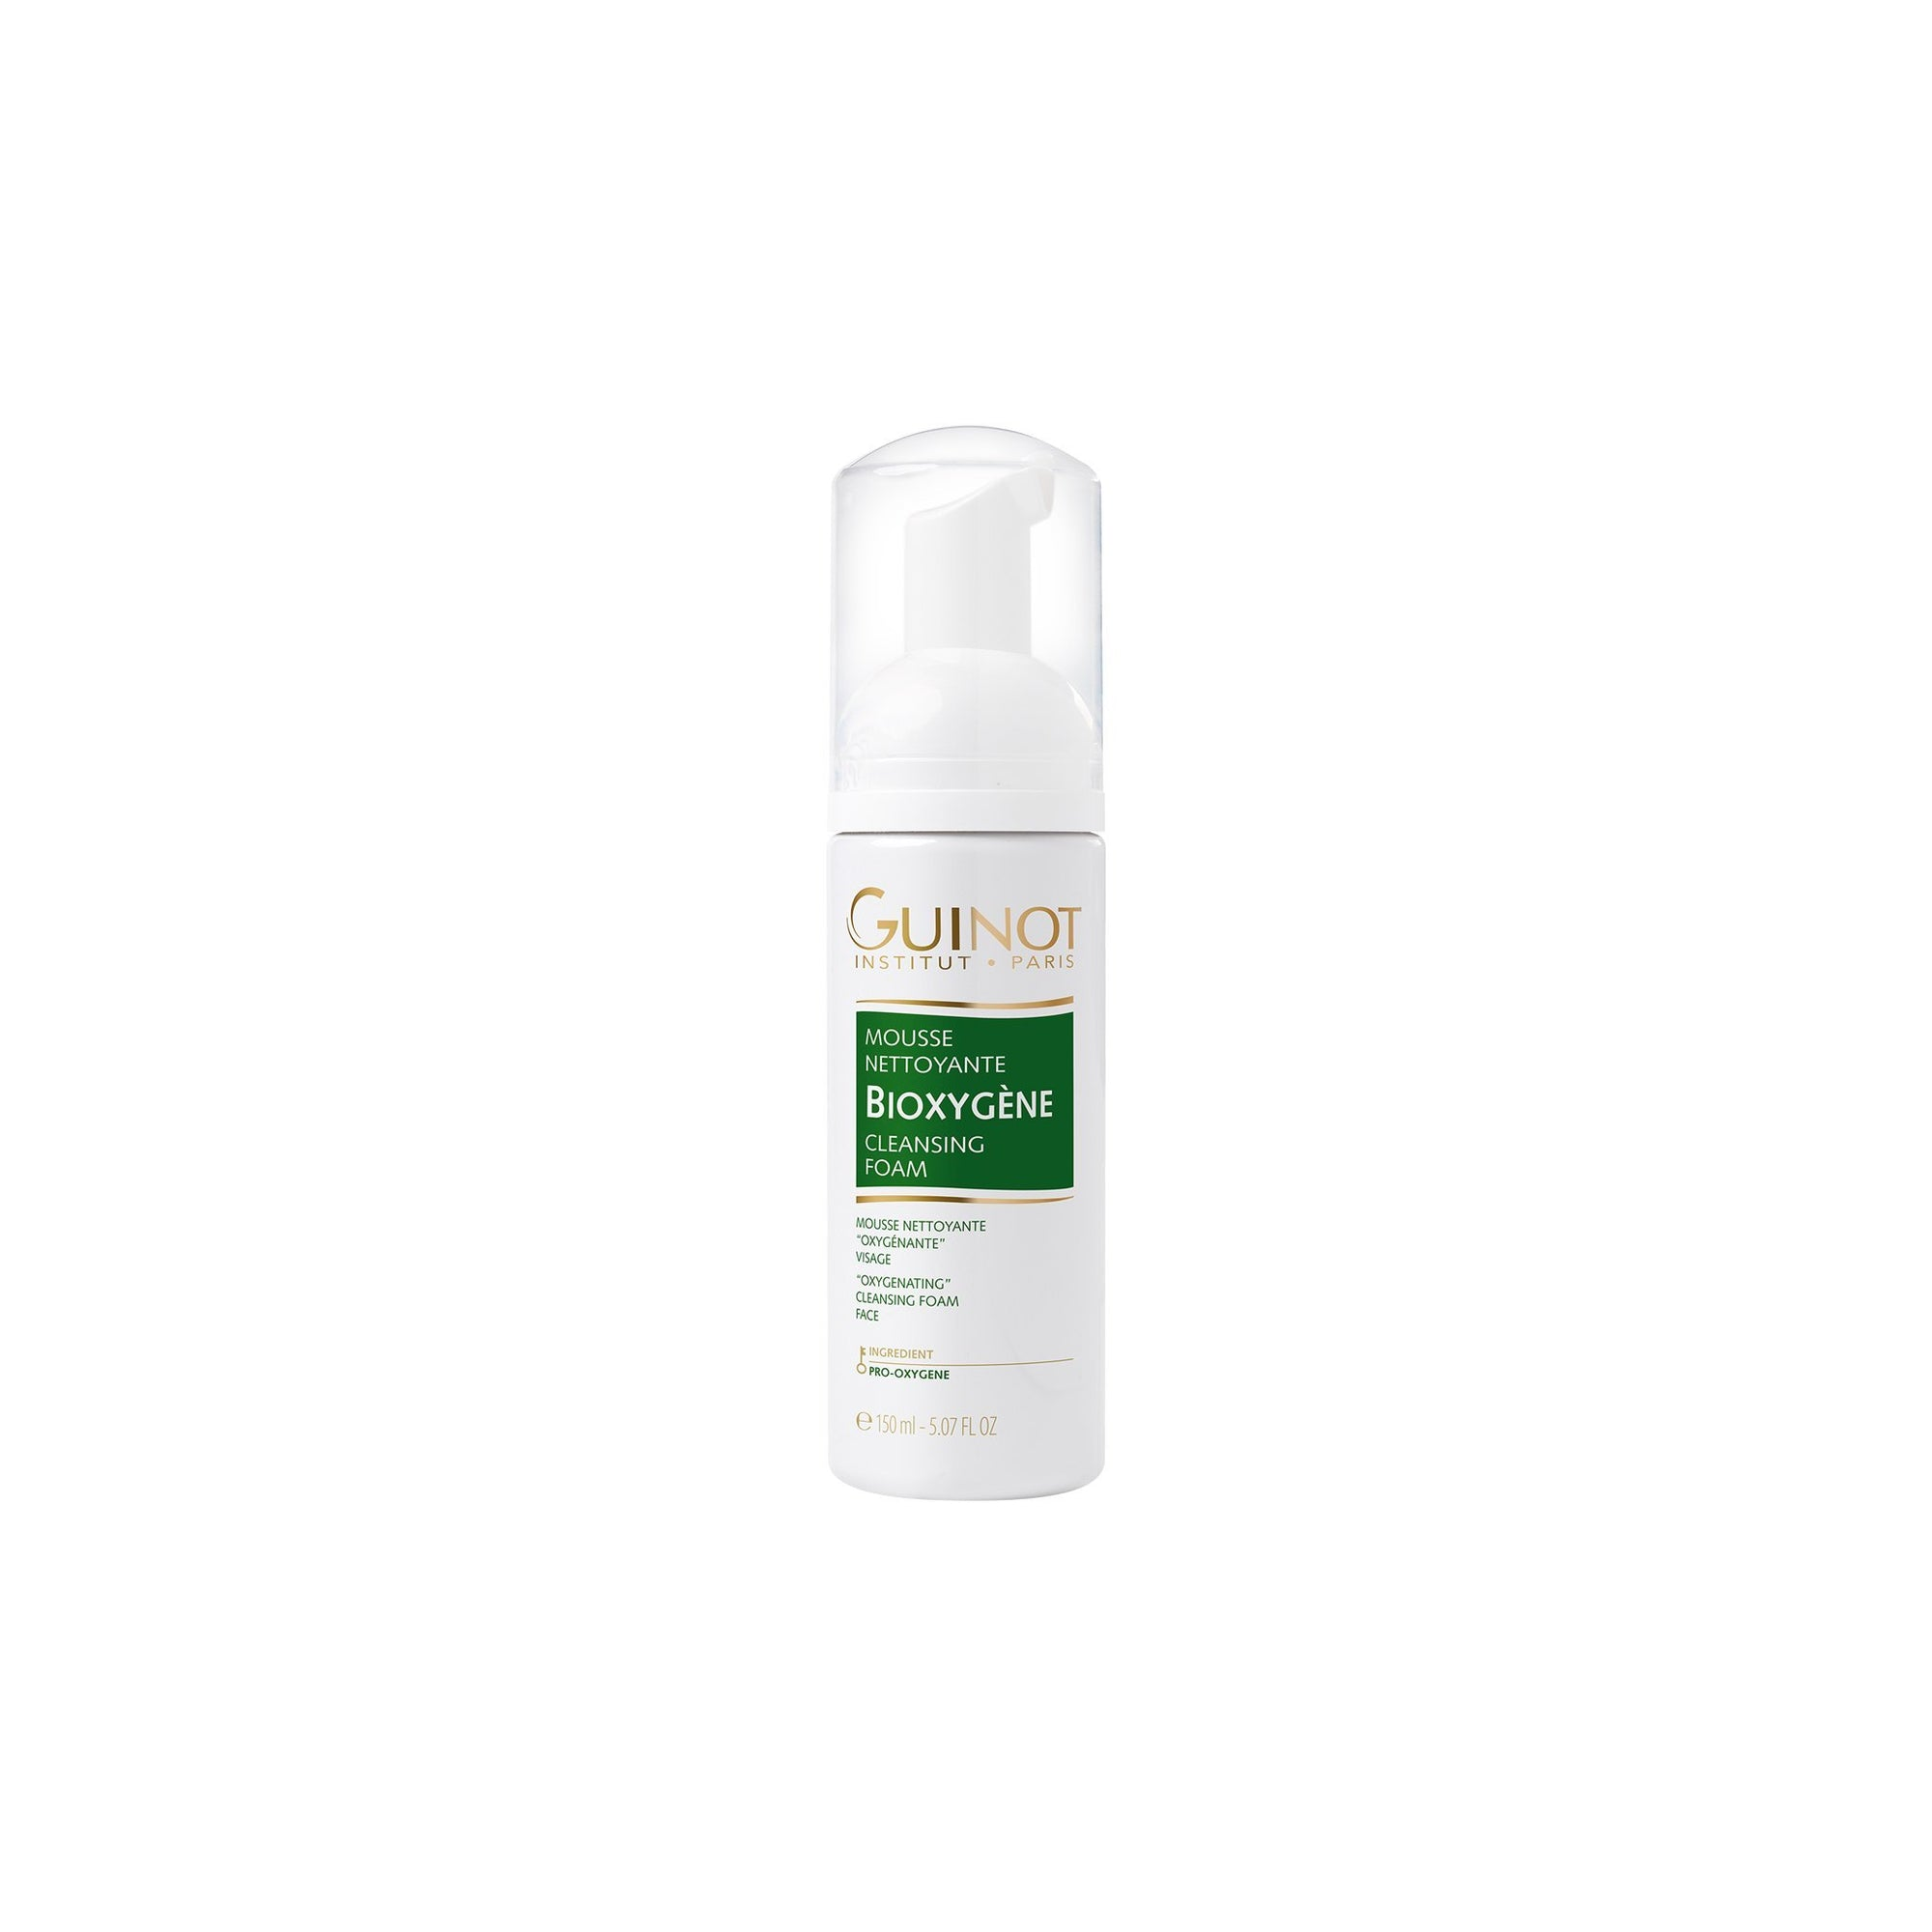 Guinot Bioxygene Cleansing Mousse 150ml